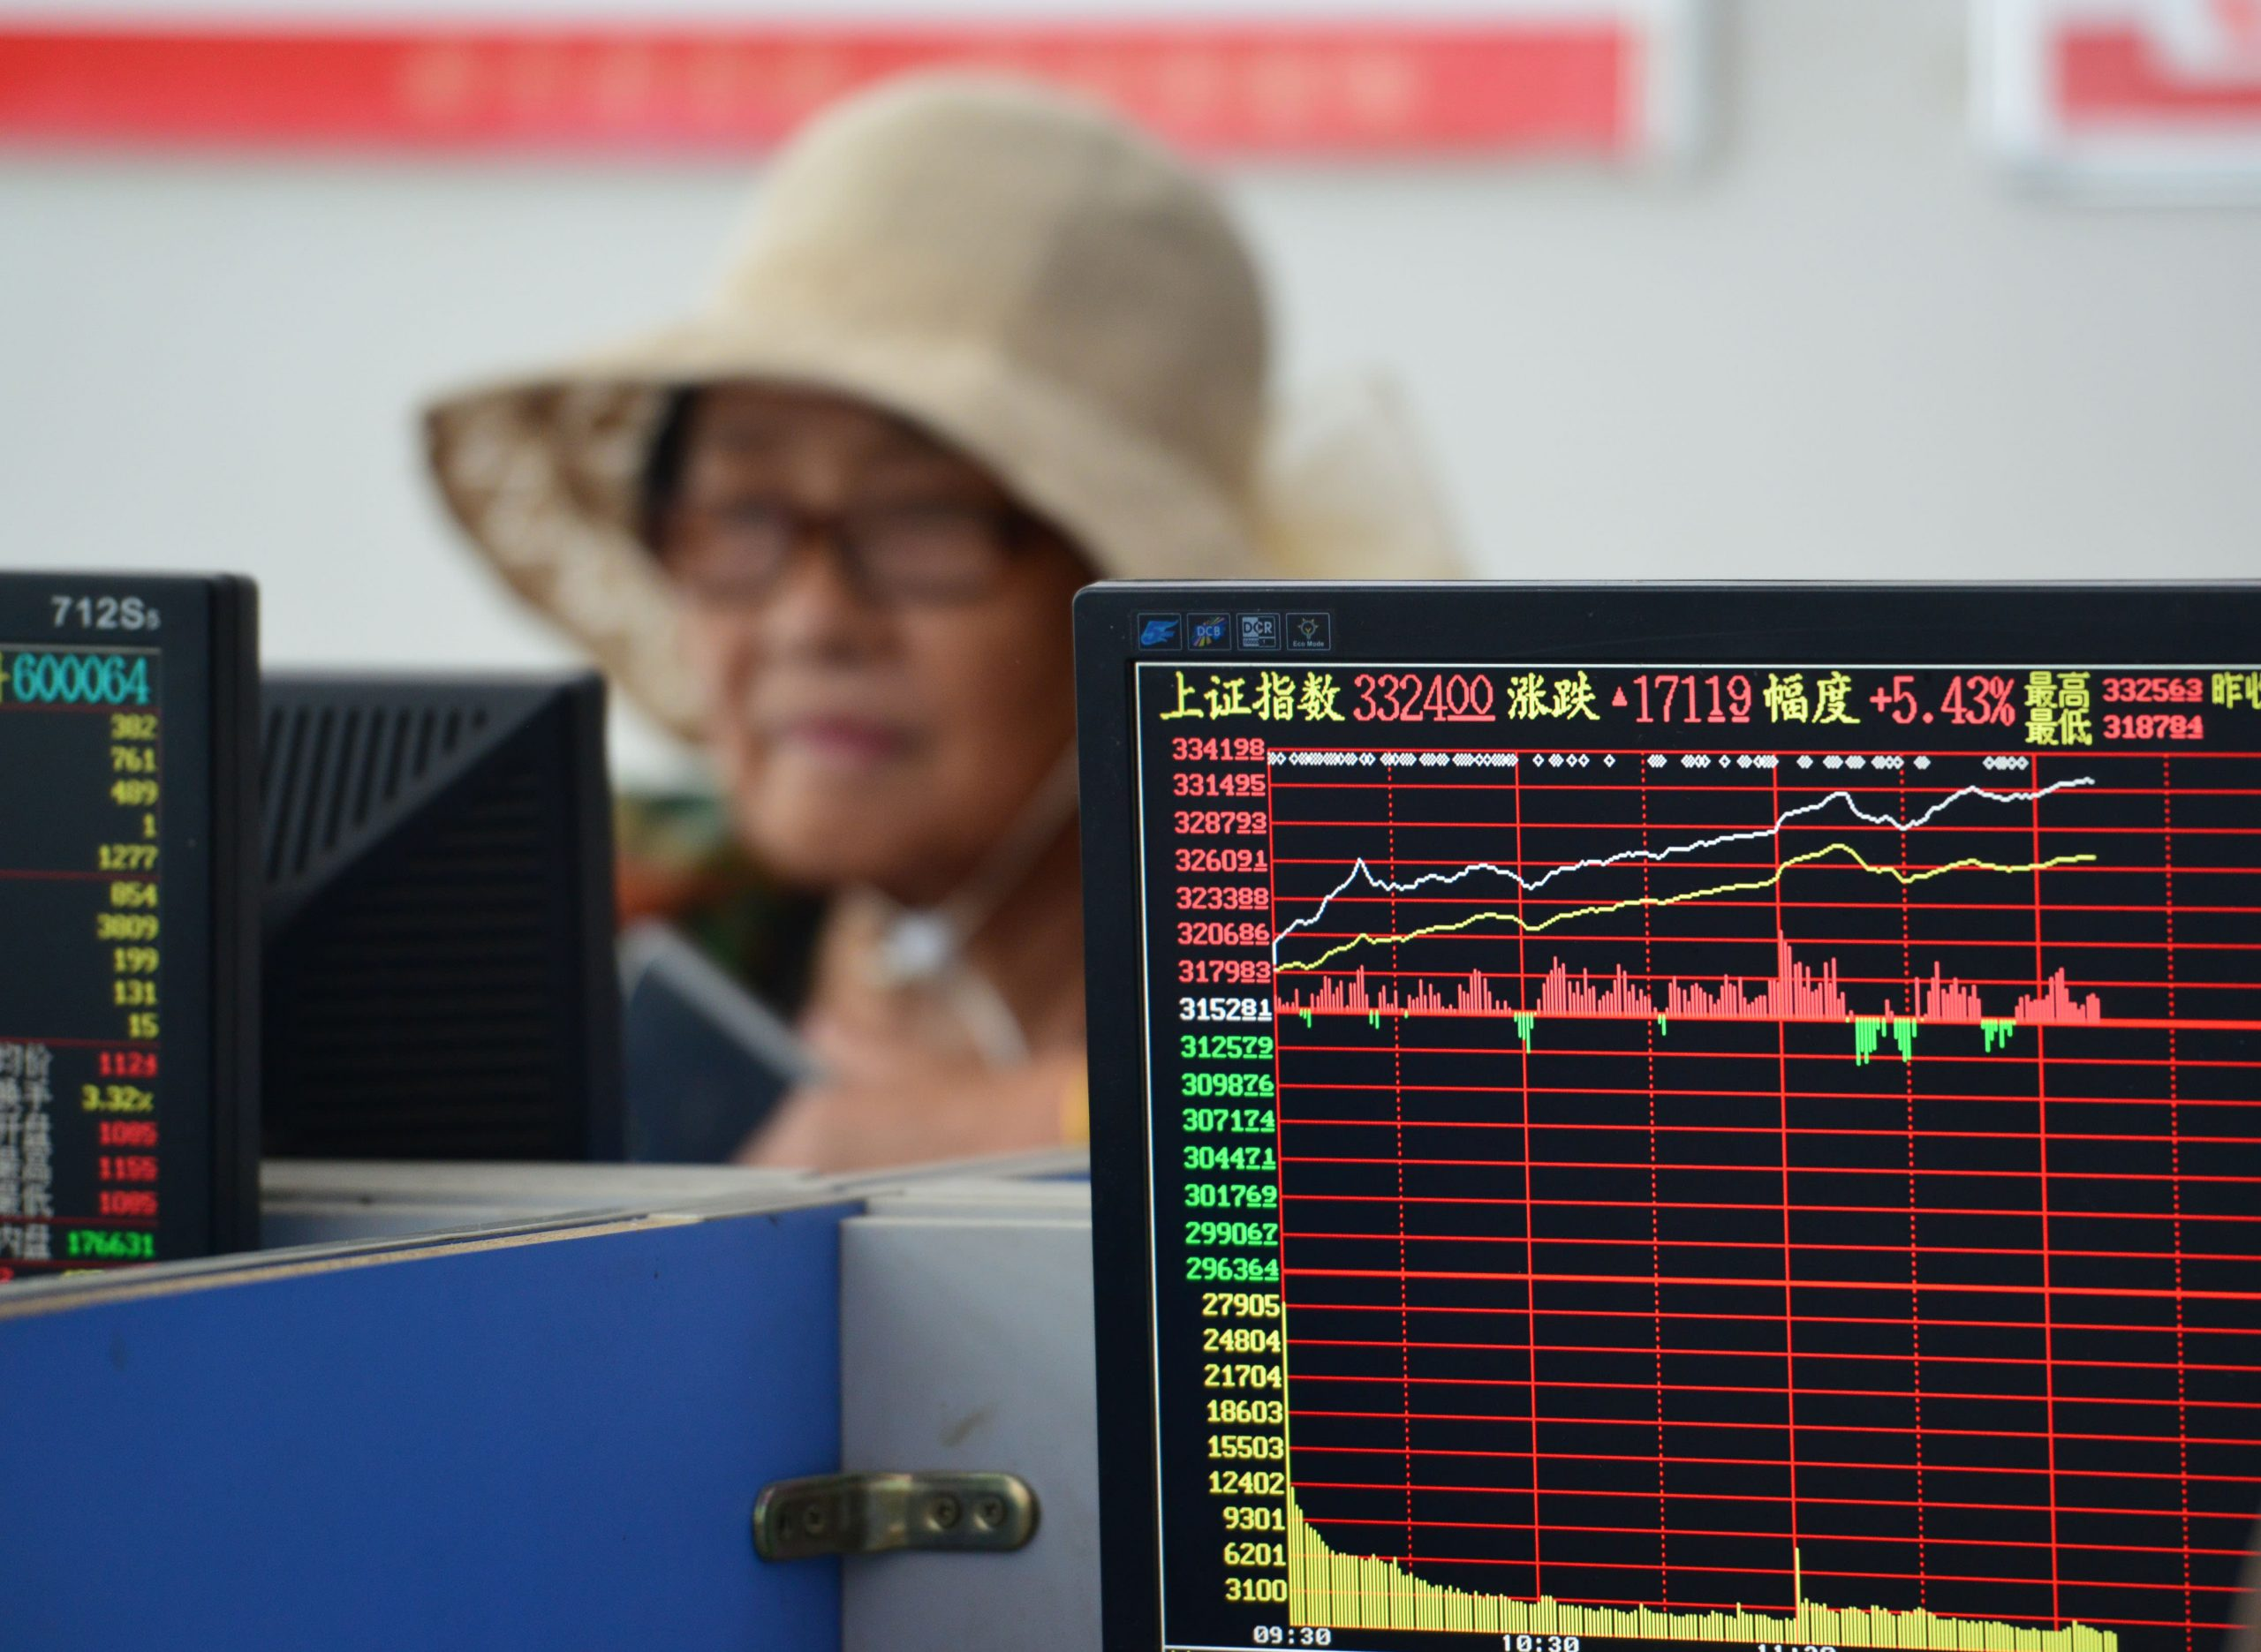 China stocks lead rally after Beijing tells people to buy